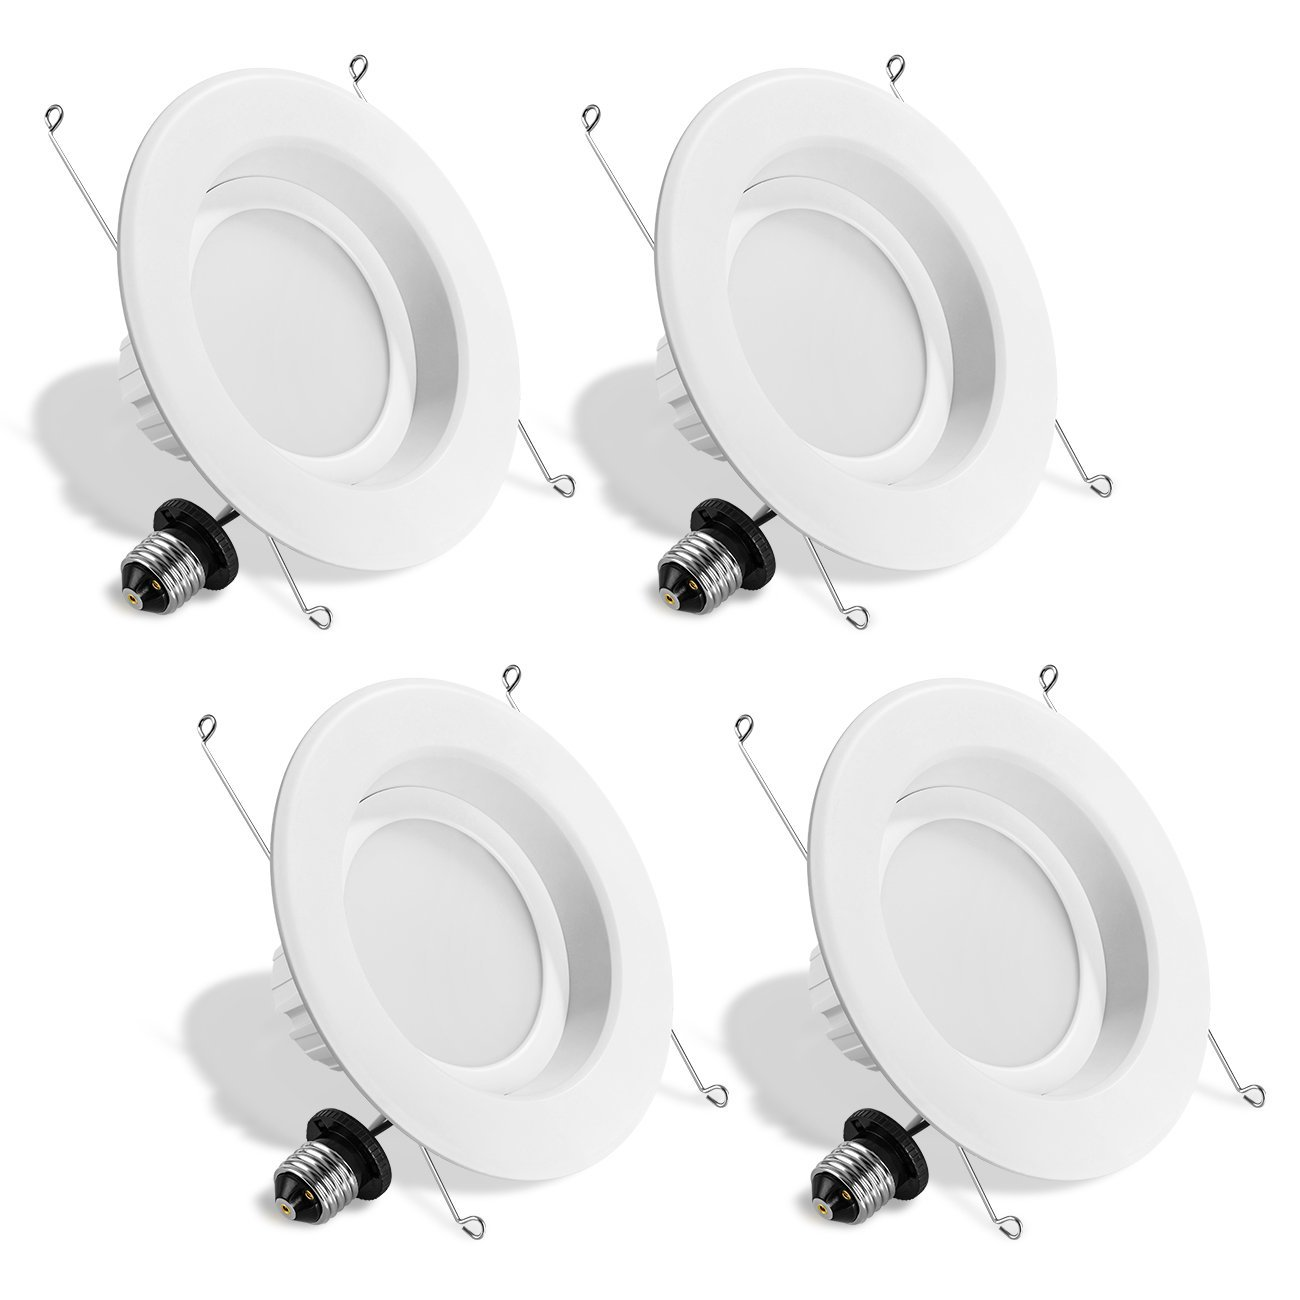 LVWIT LED 6'' Retrofit Dimmable Downlight 4000K Neutral White 1100 Lumens, 100W Equivalent 5 Year Warranty(4 Pack)